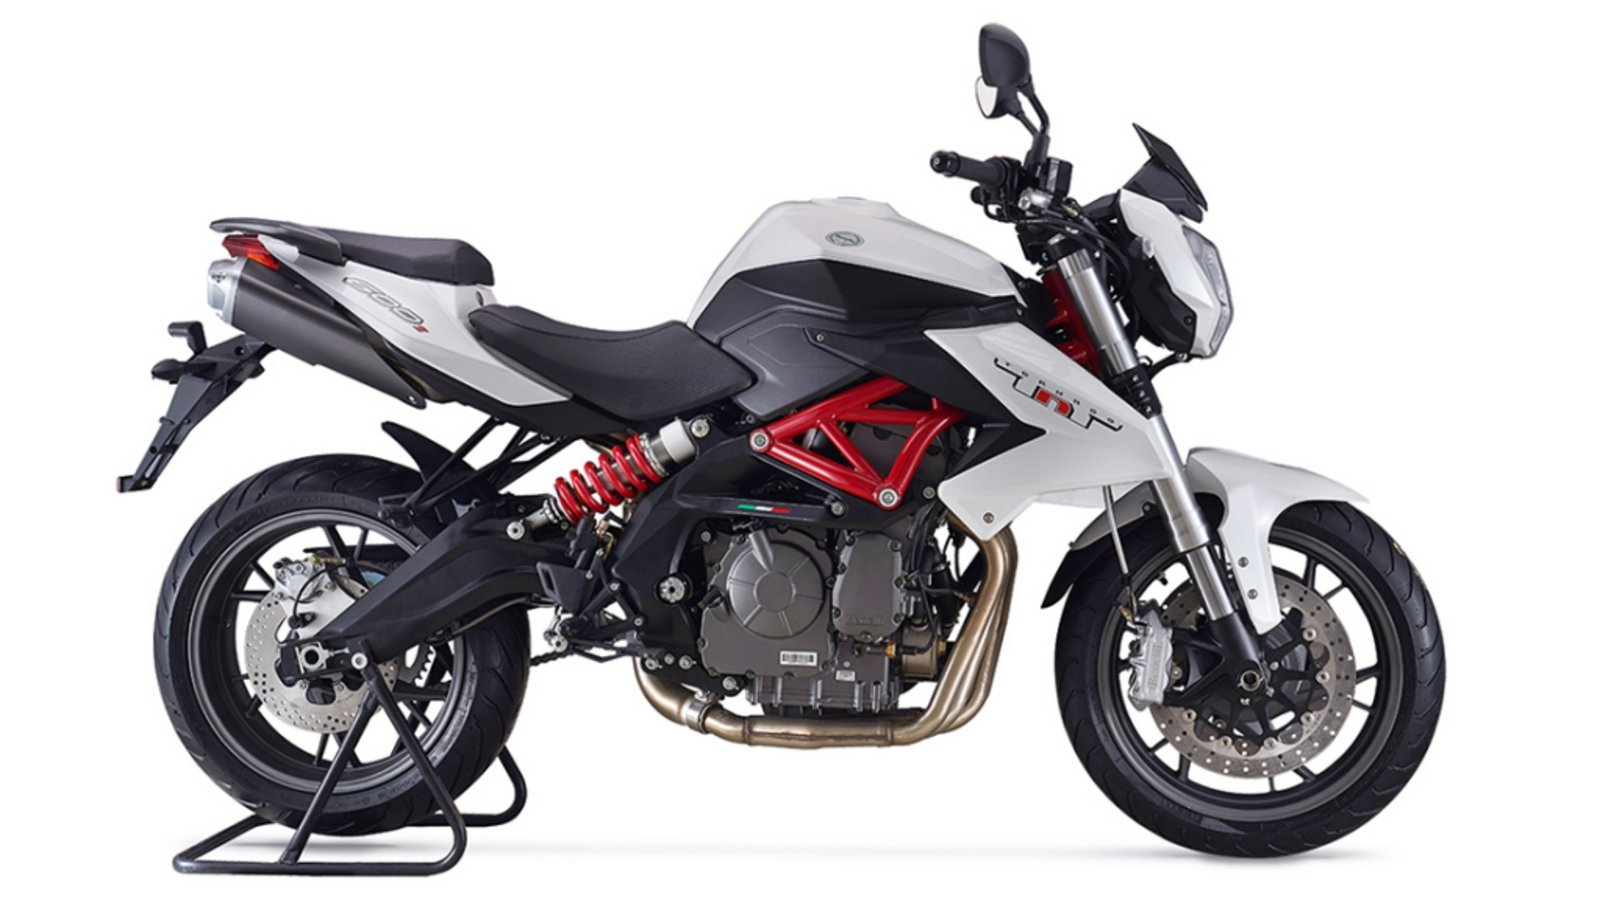 benelli tnt600 tnt motorcycle motorcycles speed brand topspeed under prices